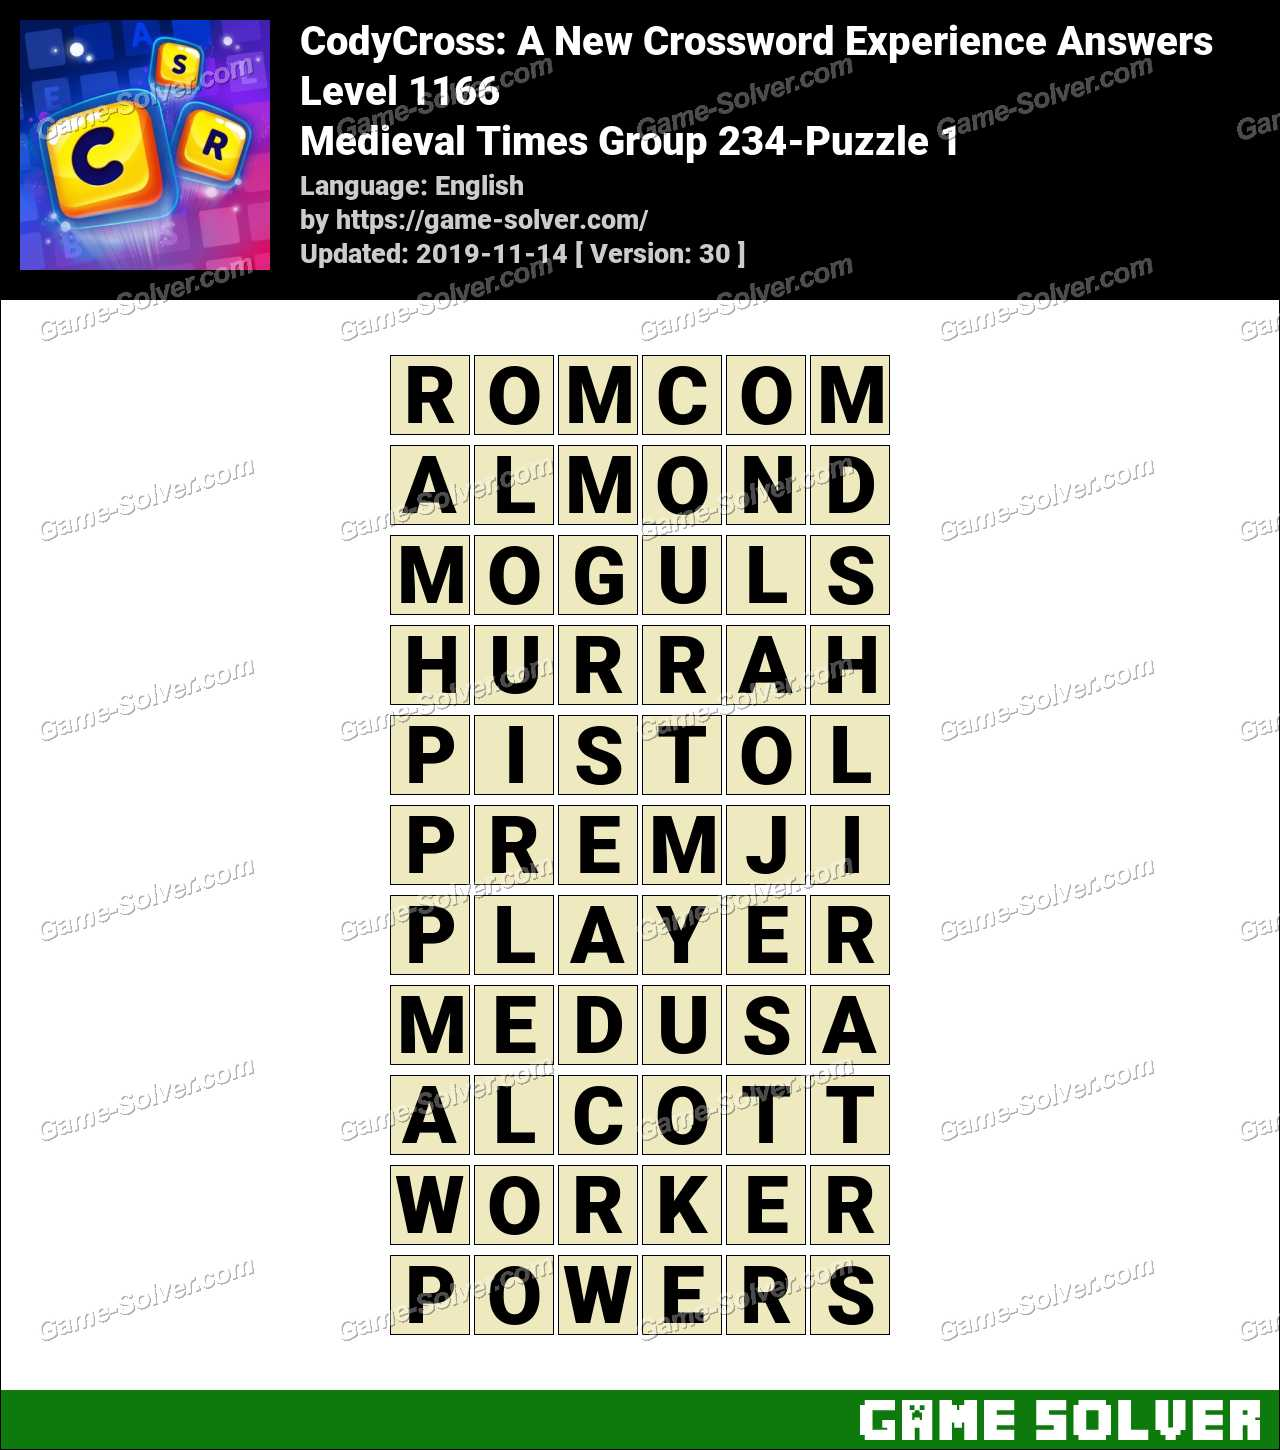 CodyCross Medieval Times Group 234-Puzzle 1 Answers